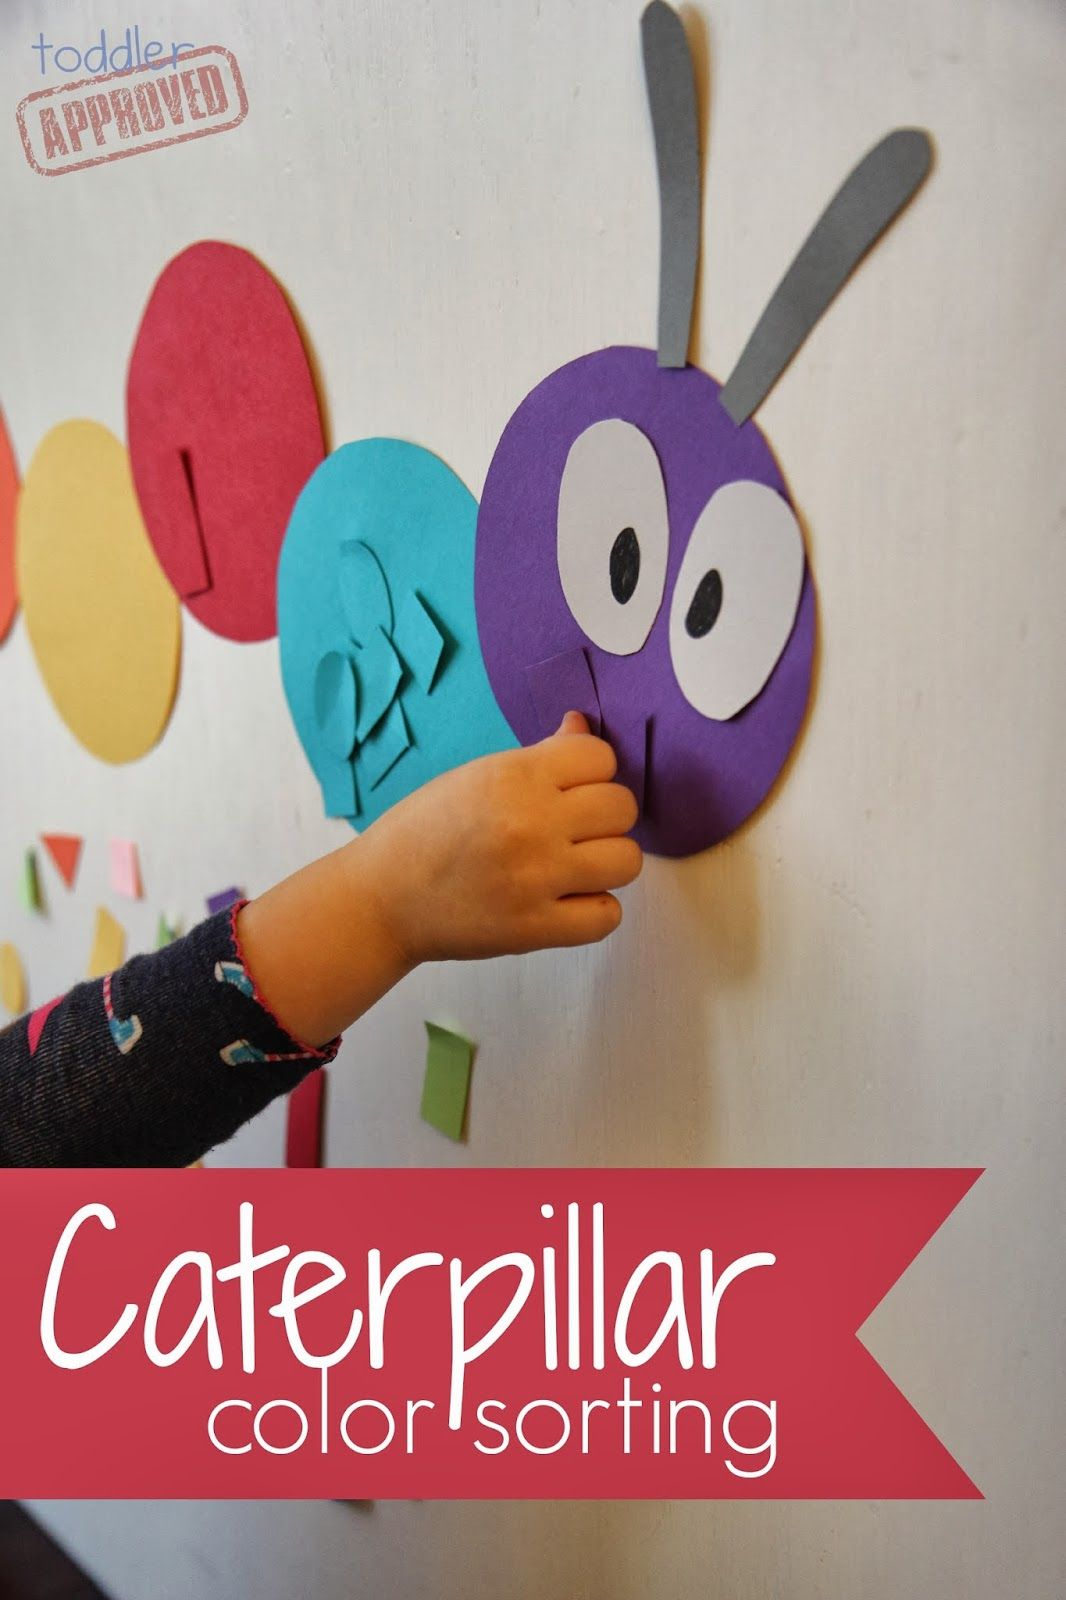 Caterpillar Color Sorting With Images Bug Activities Toddler